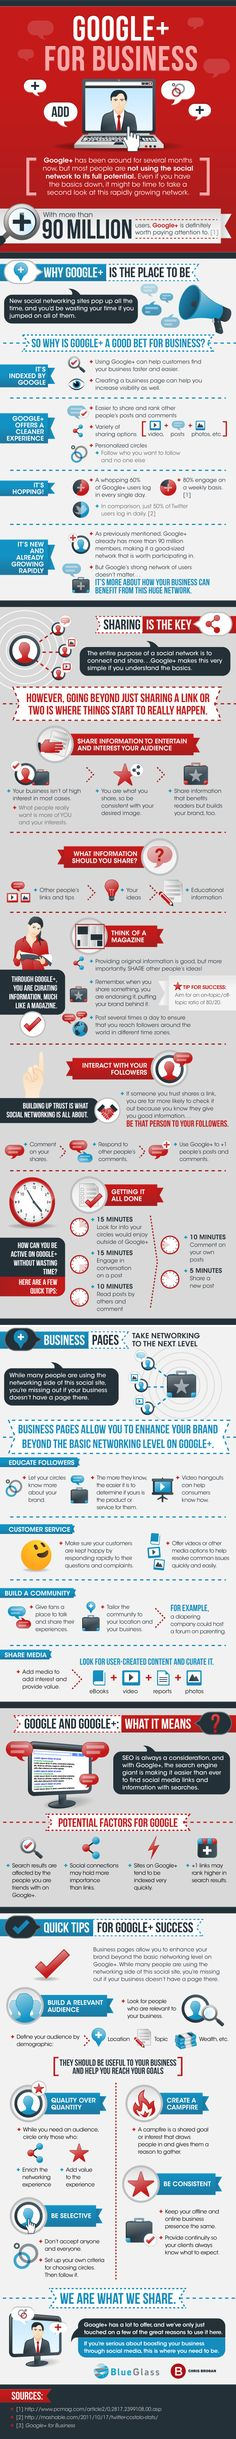 #Infographic that may sway you to get serious about using #GooglePlus to market your business online.